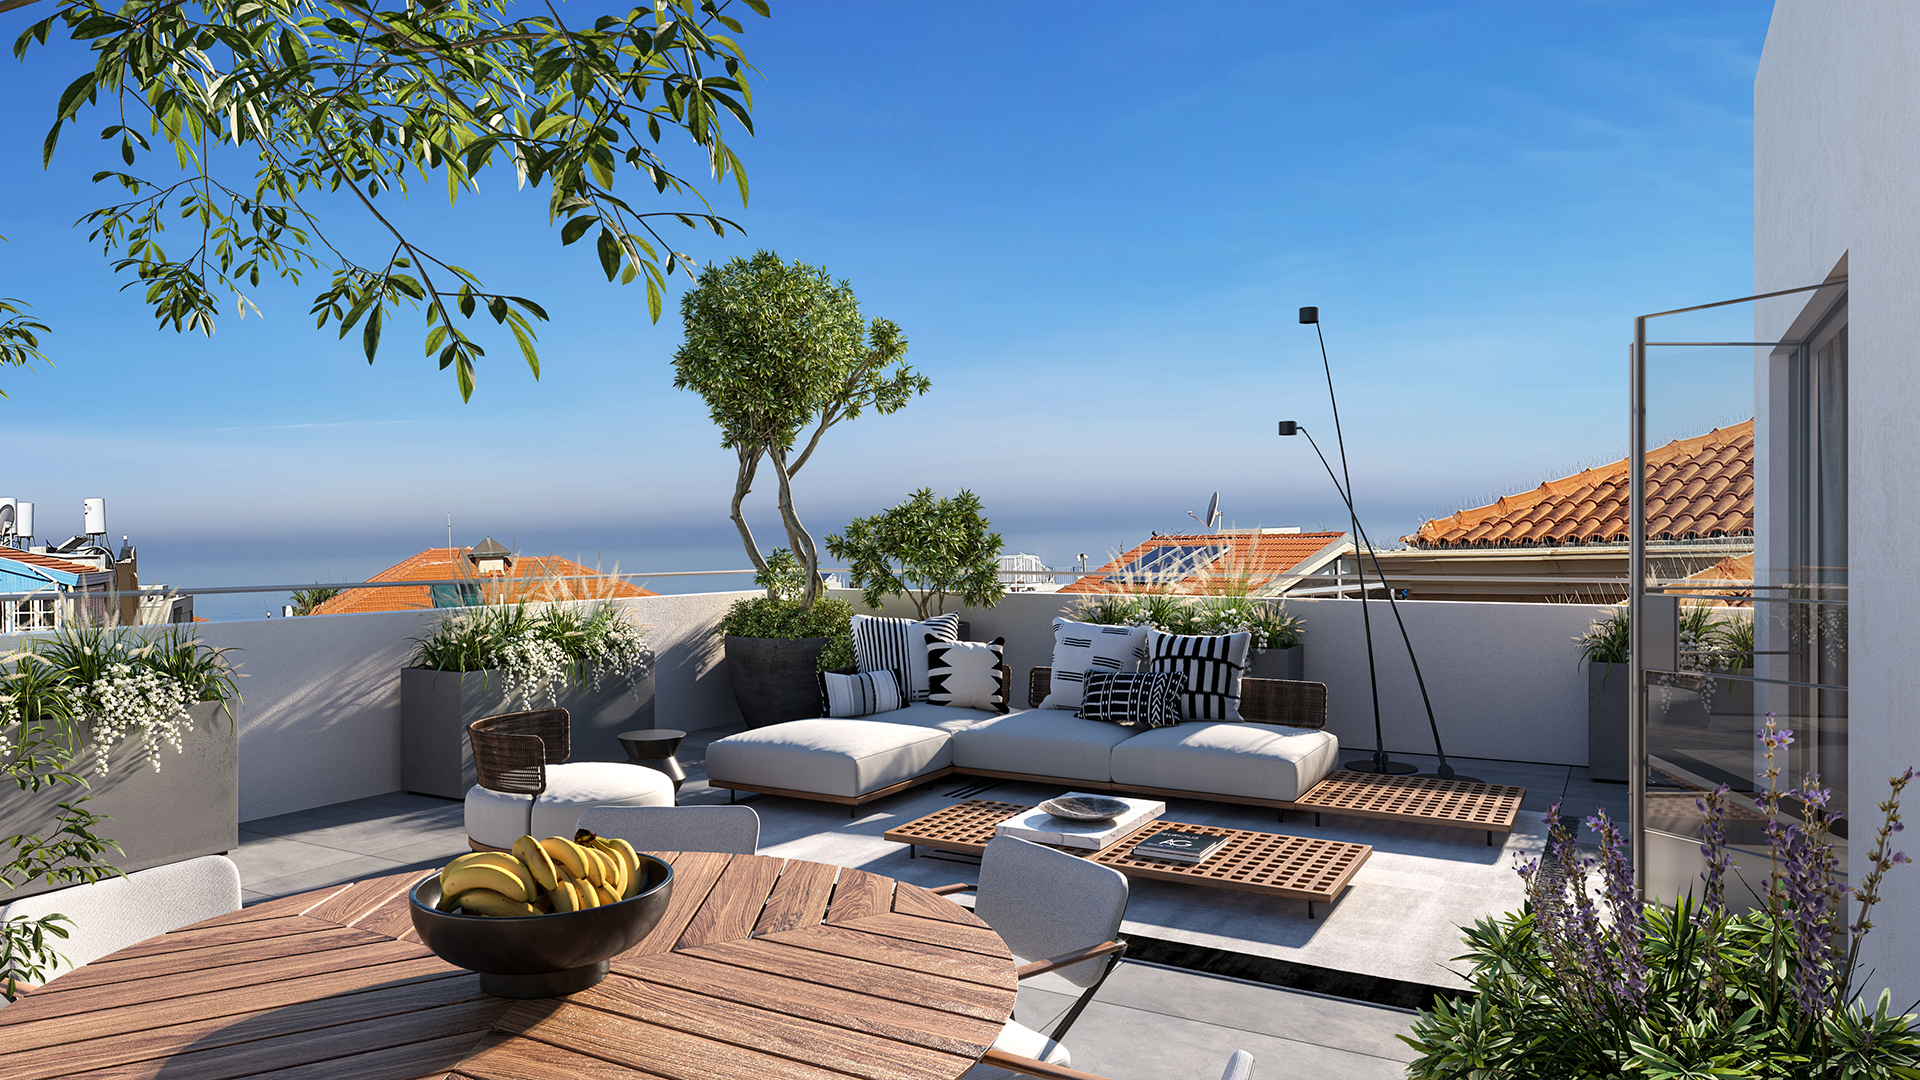 Maayan-Golan_Architectural-Visualization_interior-render_apartment_balcony-roof-top_04